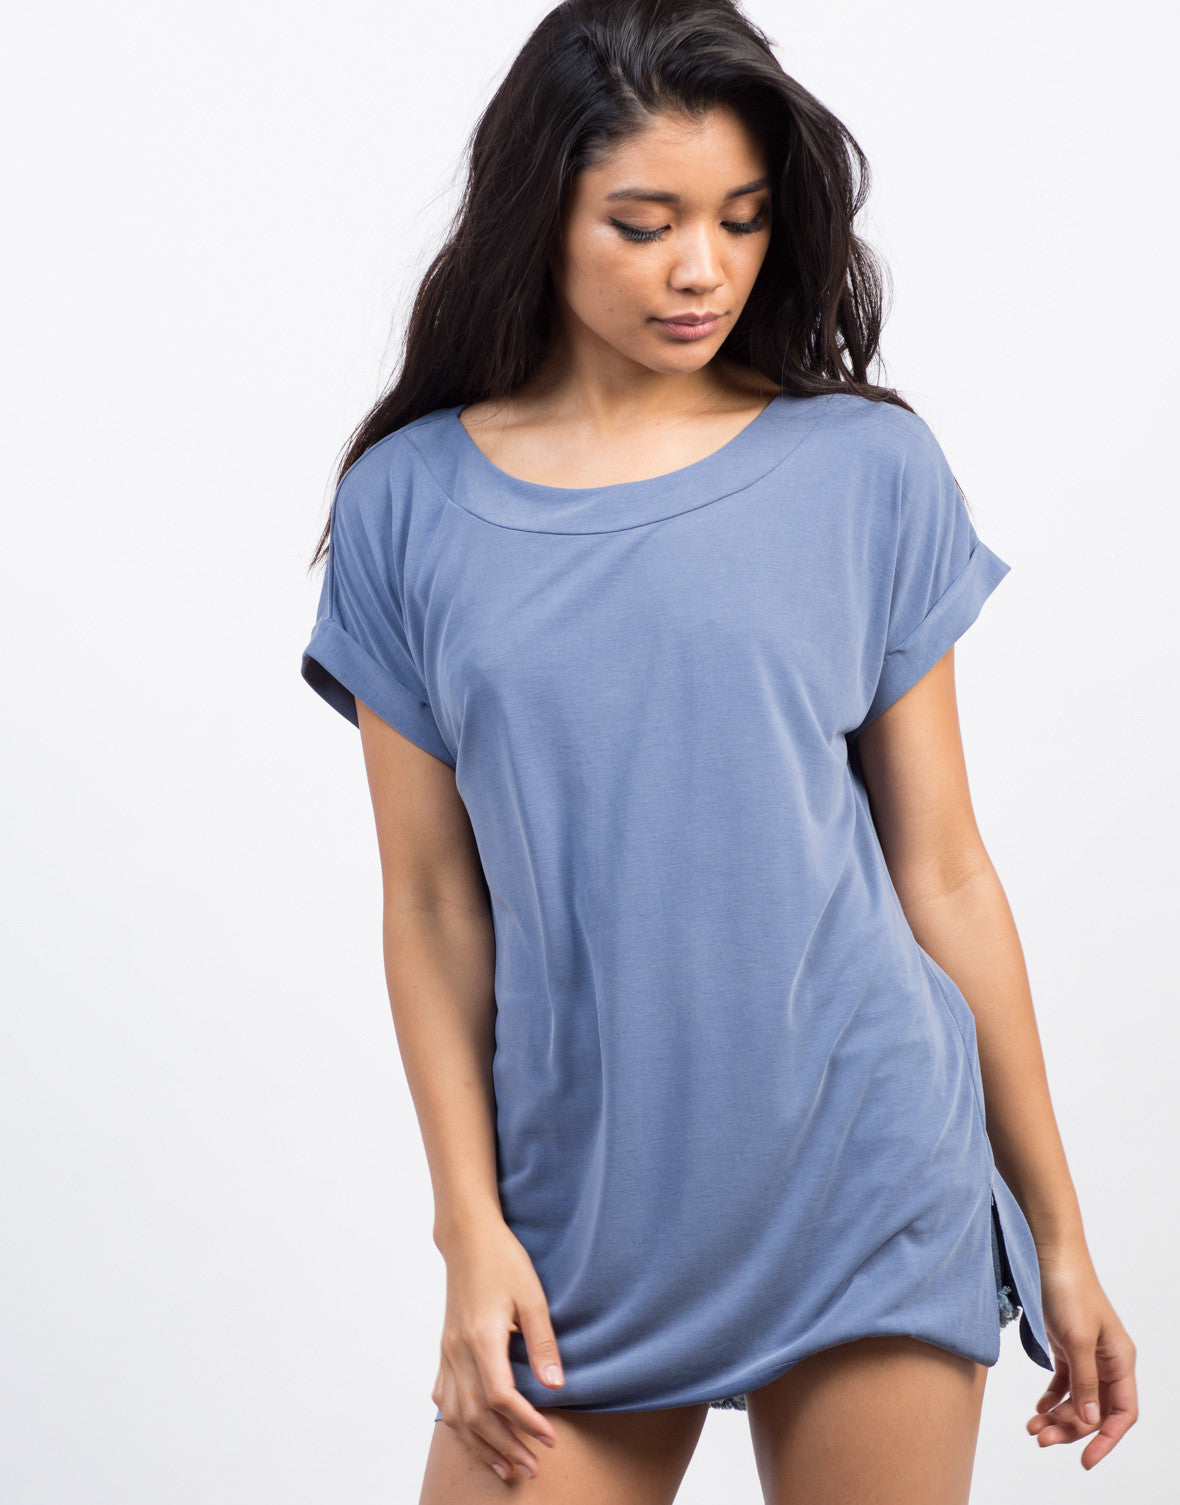 Cuffed Sleeves Lightweight Top